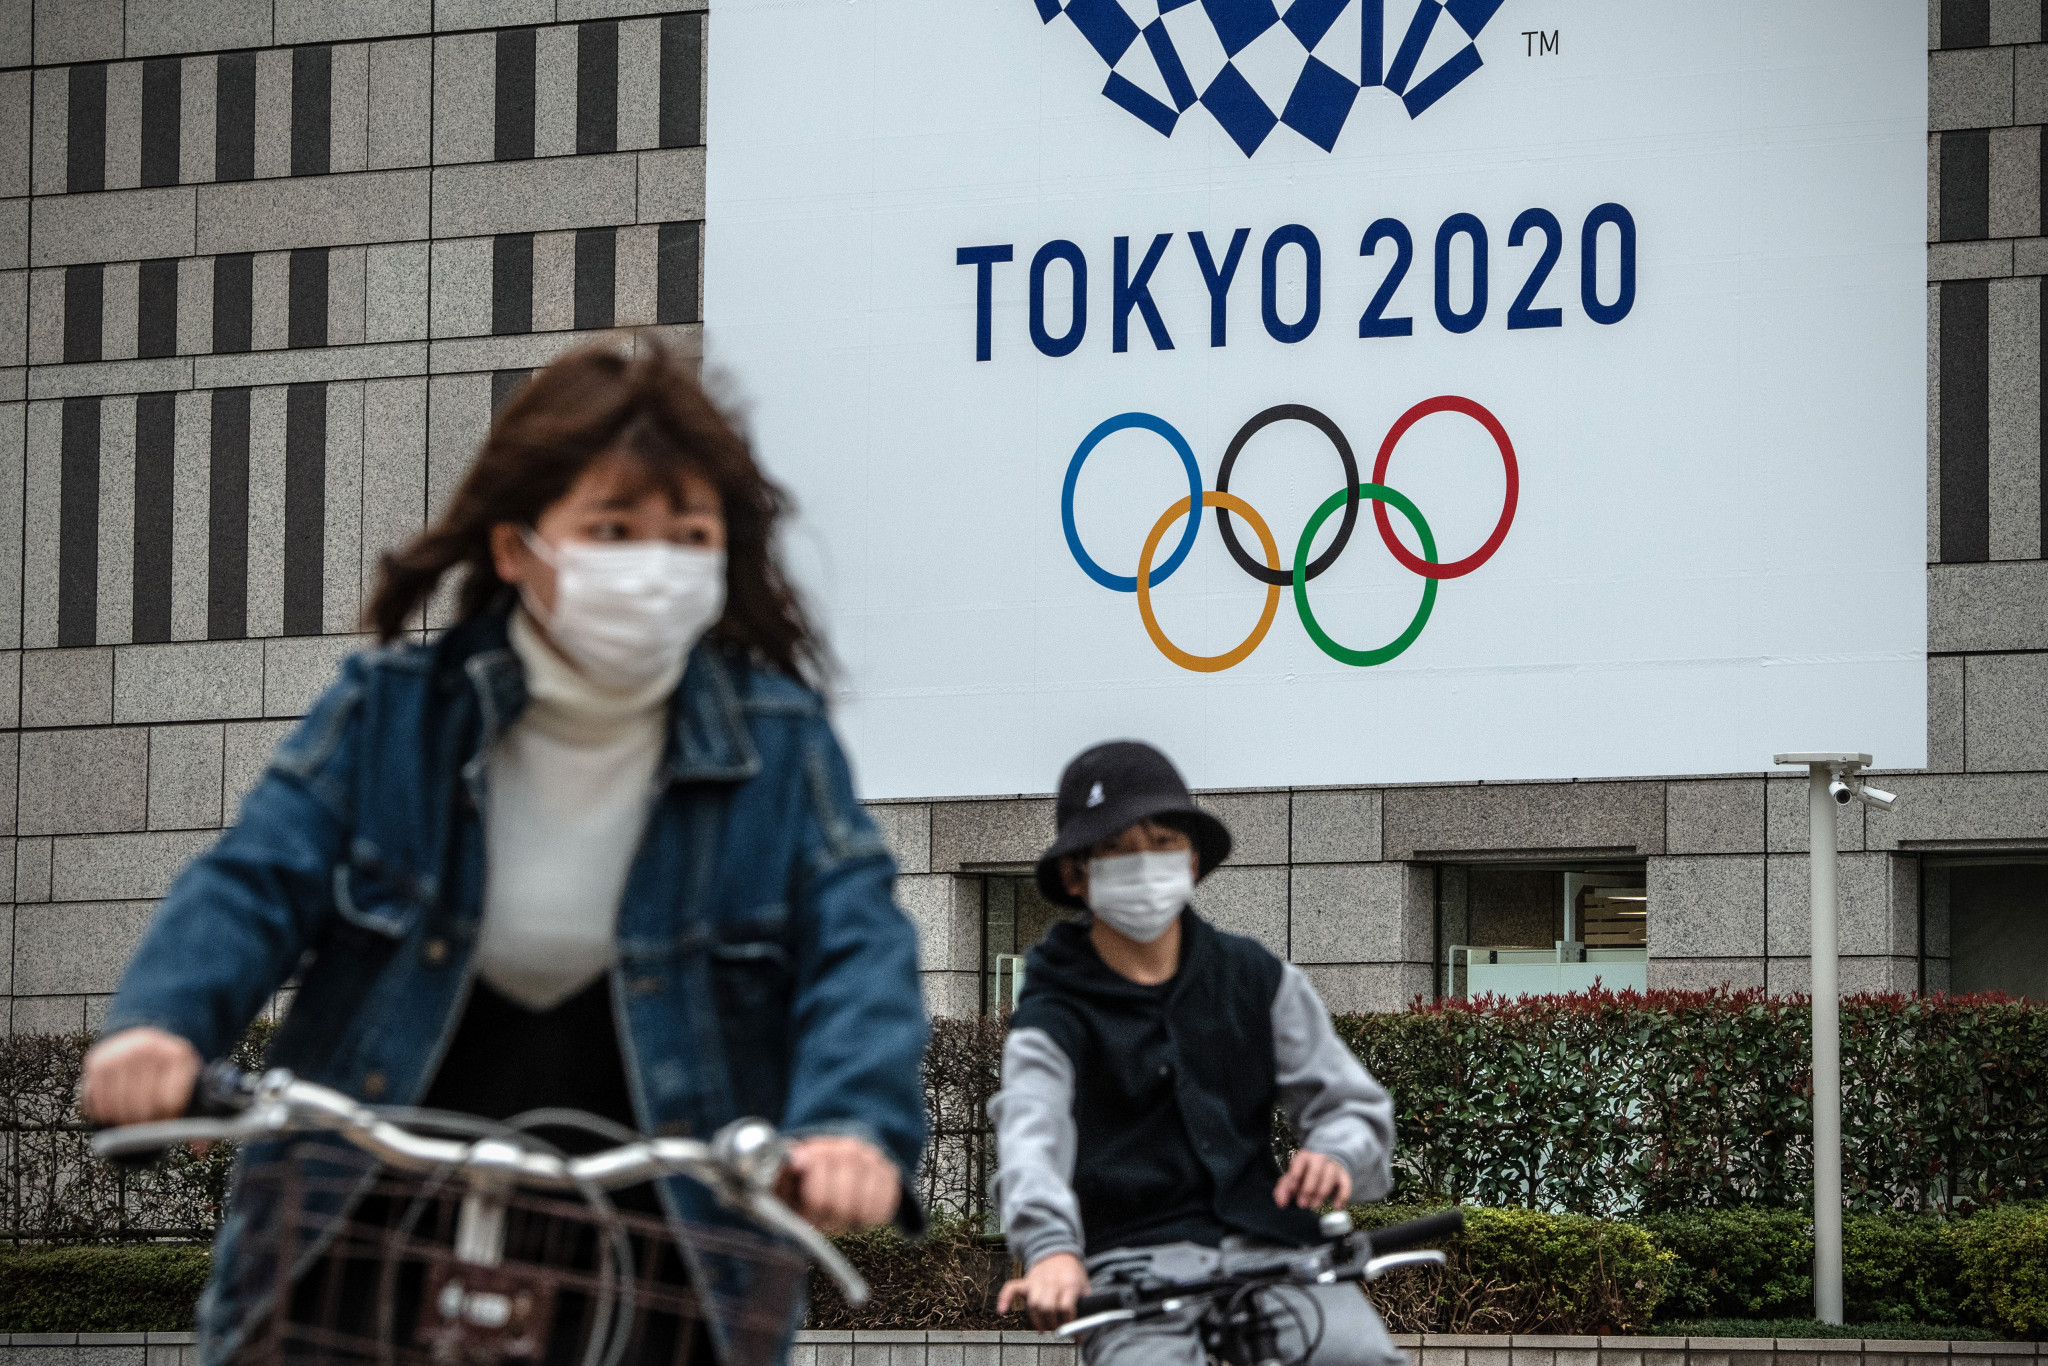 With Tokyo 2020 set to take place amid a global health crisis, it is more important than ever that all attending following the guidelines ©Getty Images